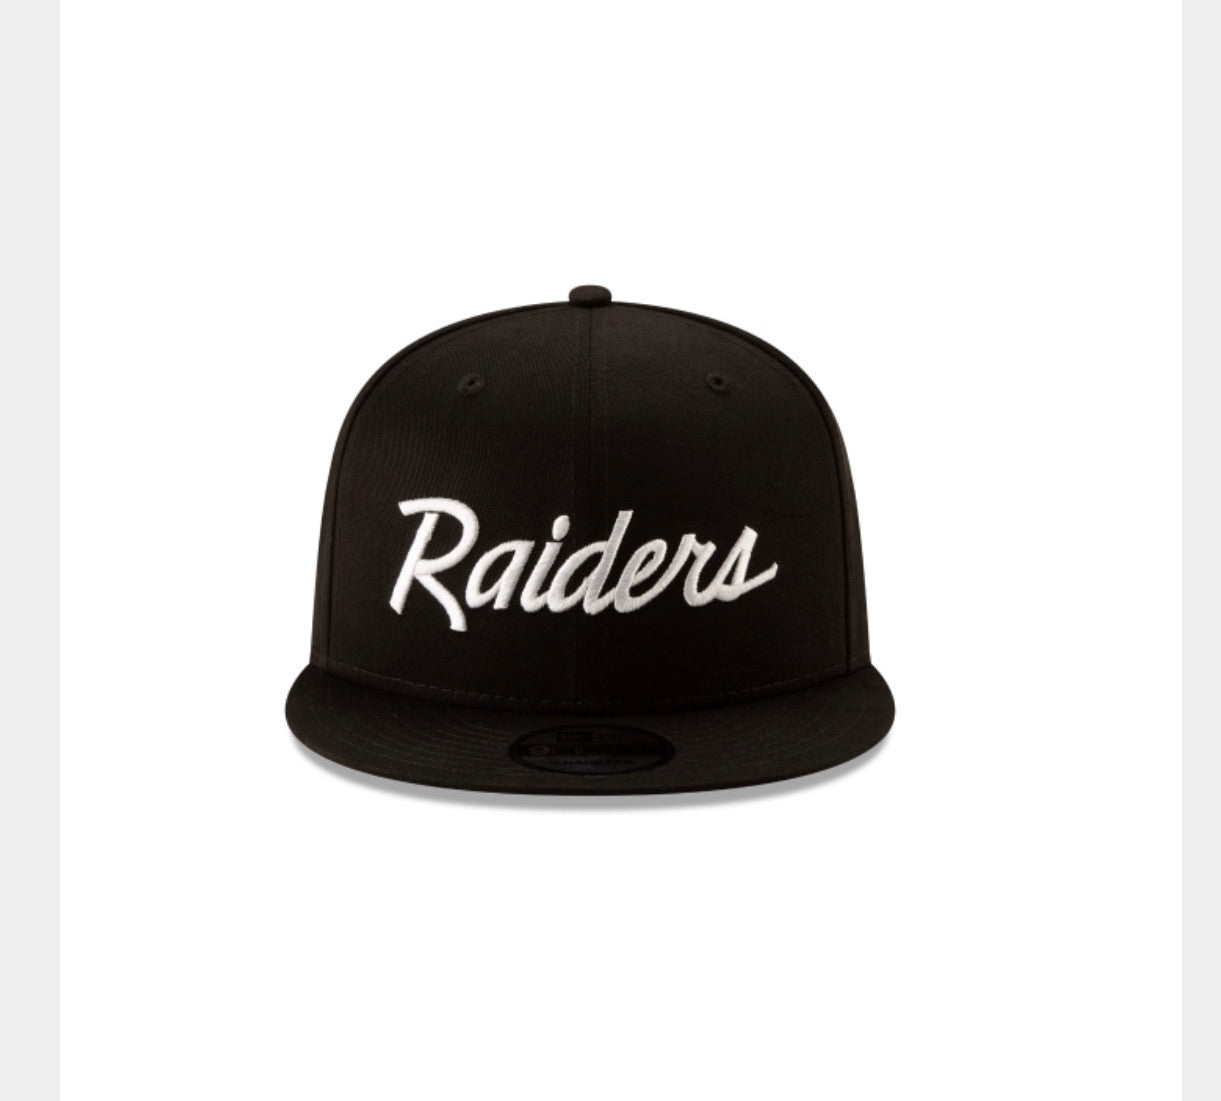 Las Vegas Raiders New Era 950 Snap Back NFL Basic Black Hat - AtlanticCoastSports